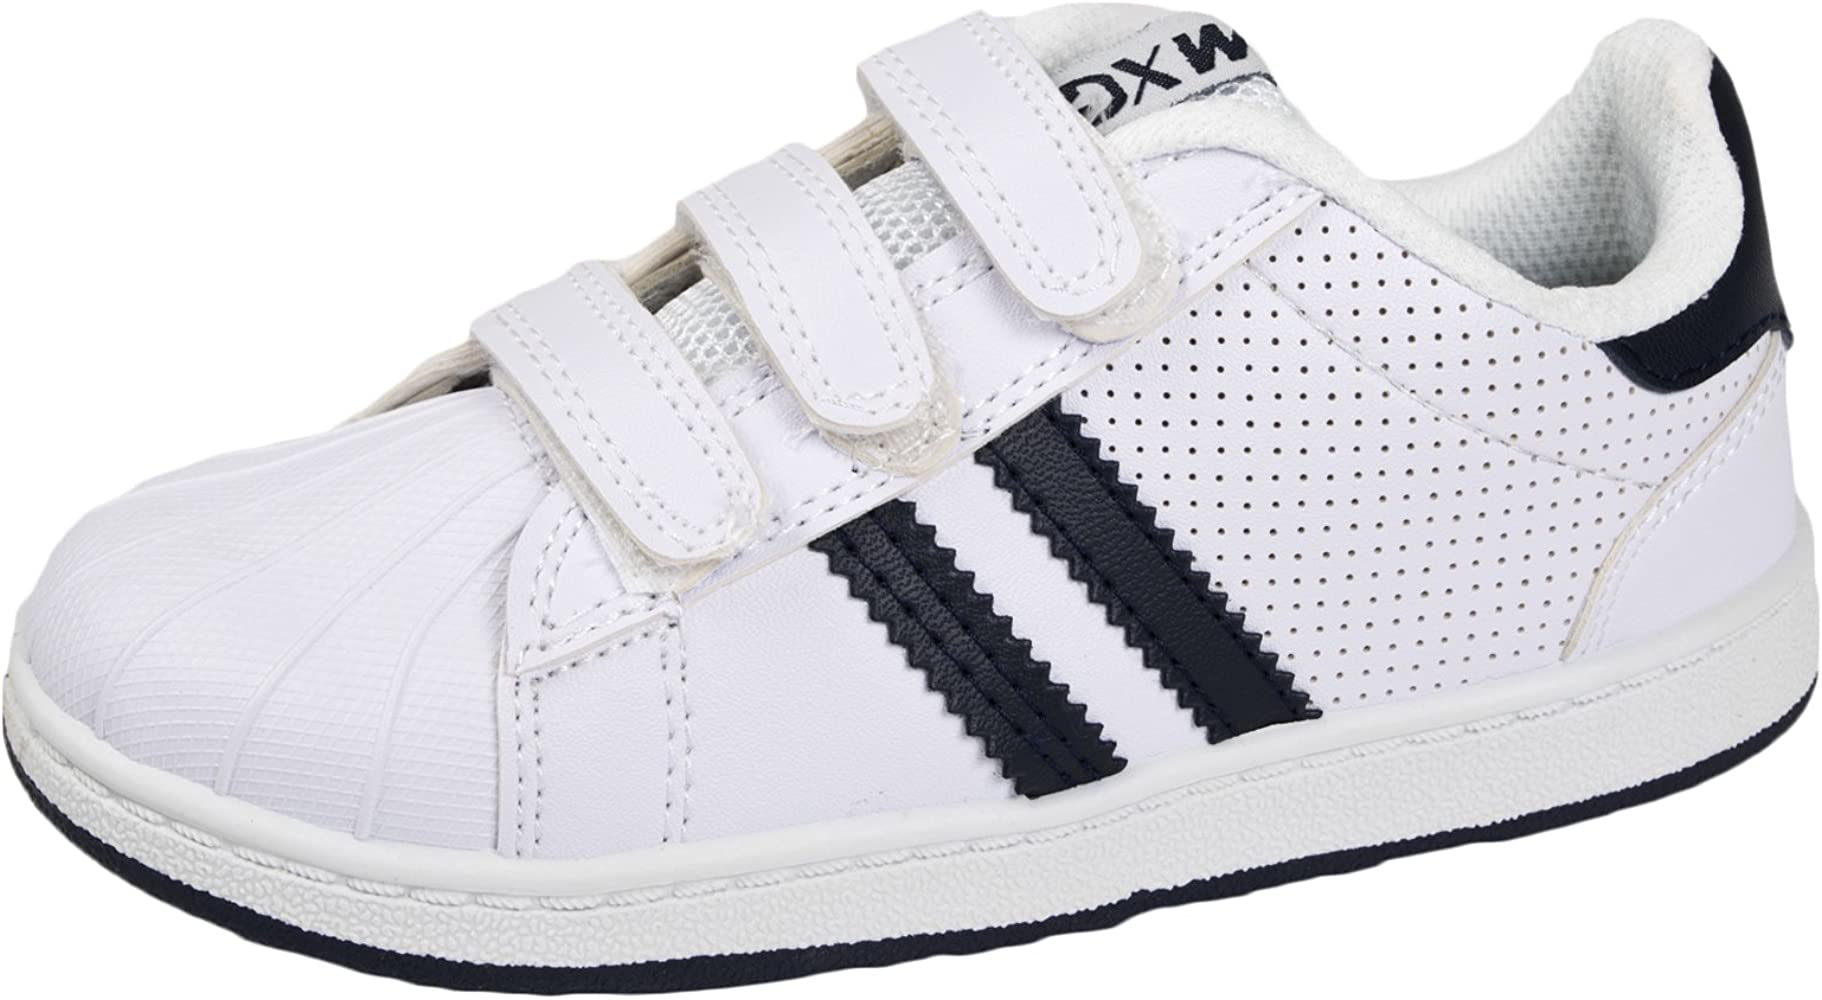 Kids Trainers White / Navy Size 8